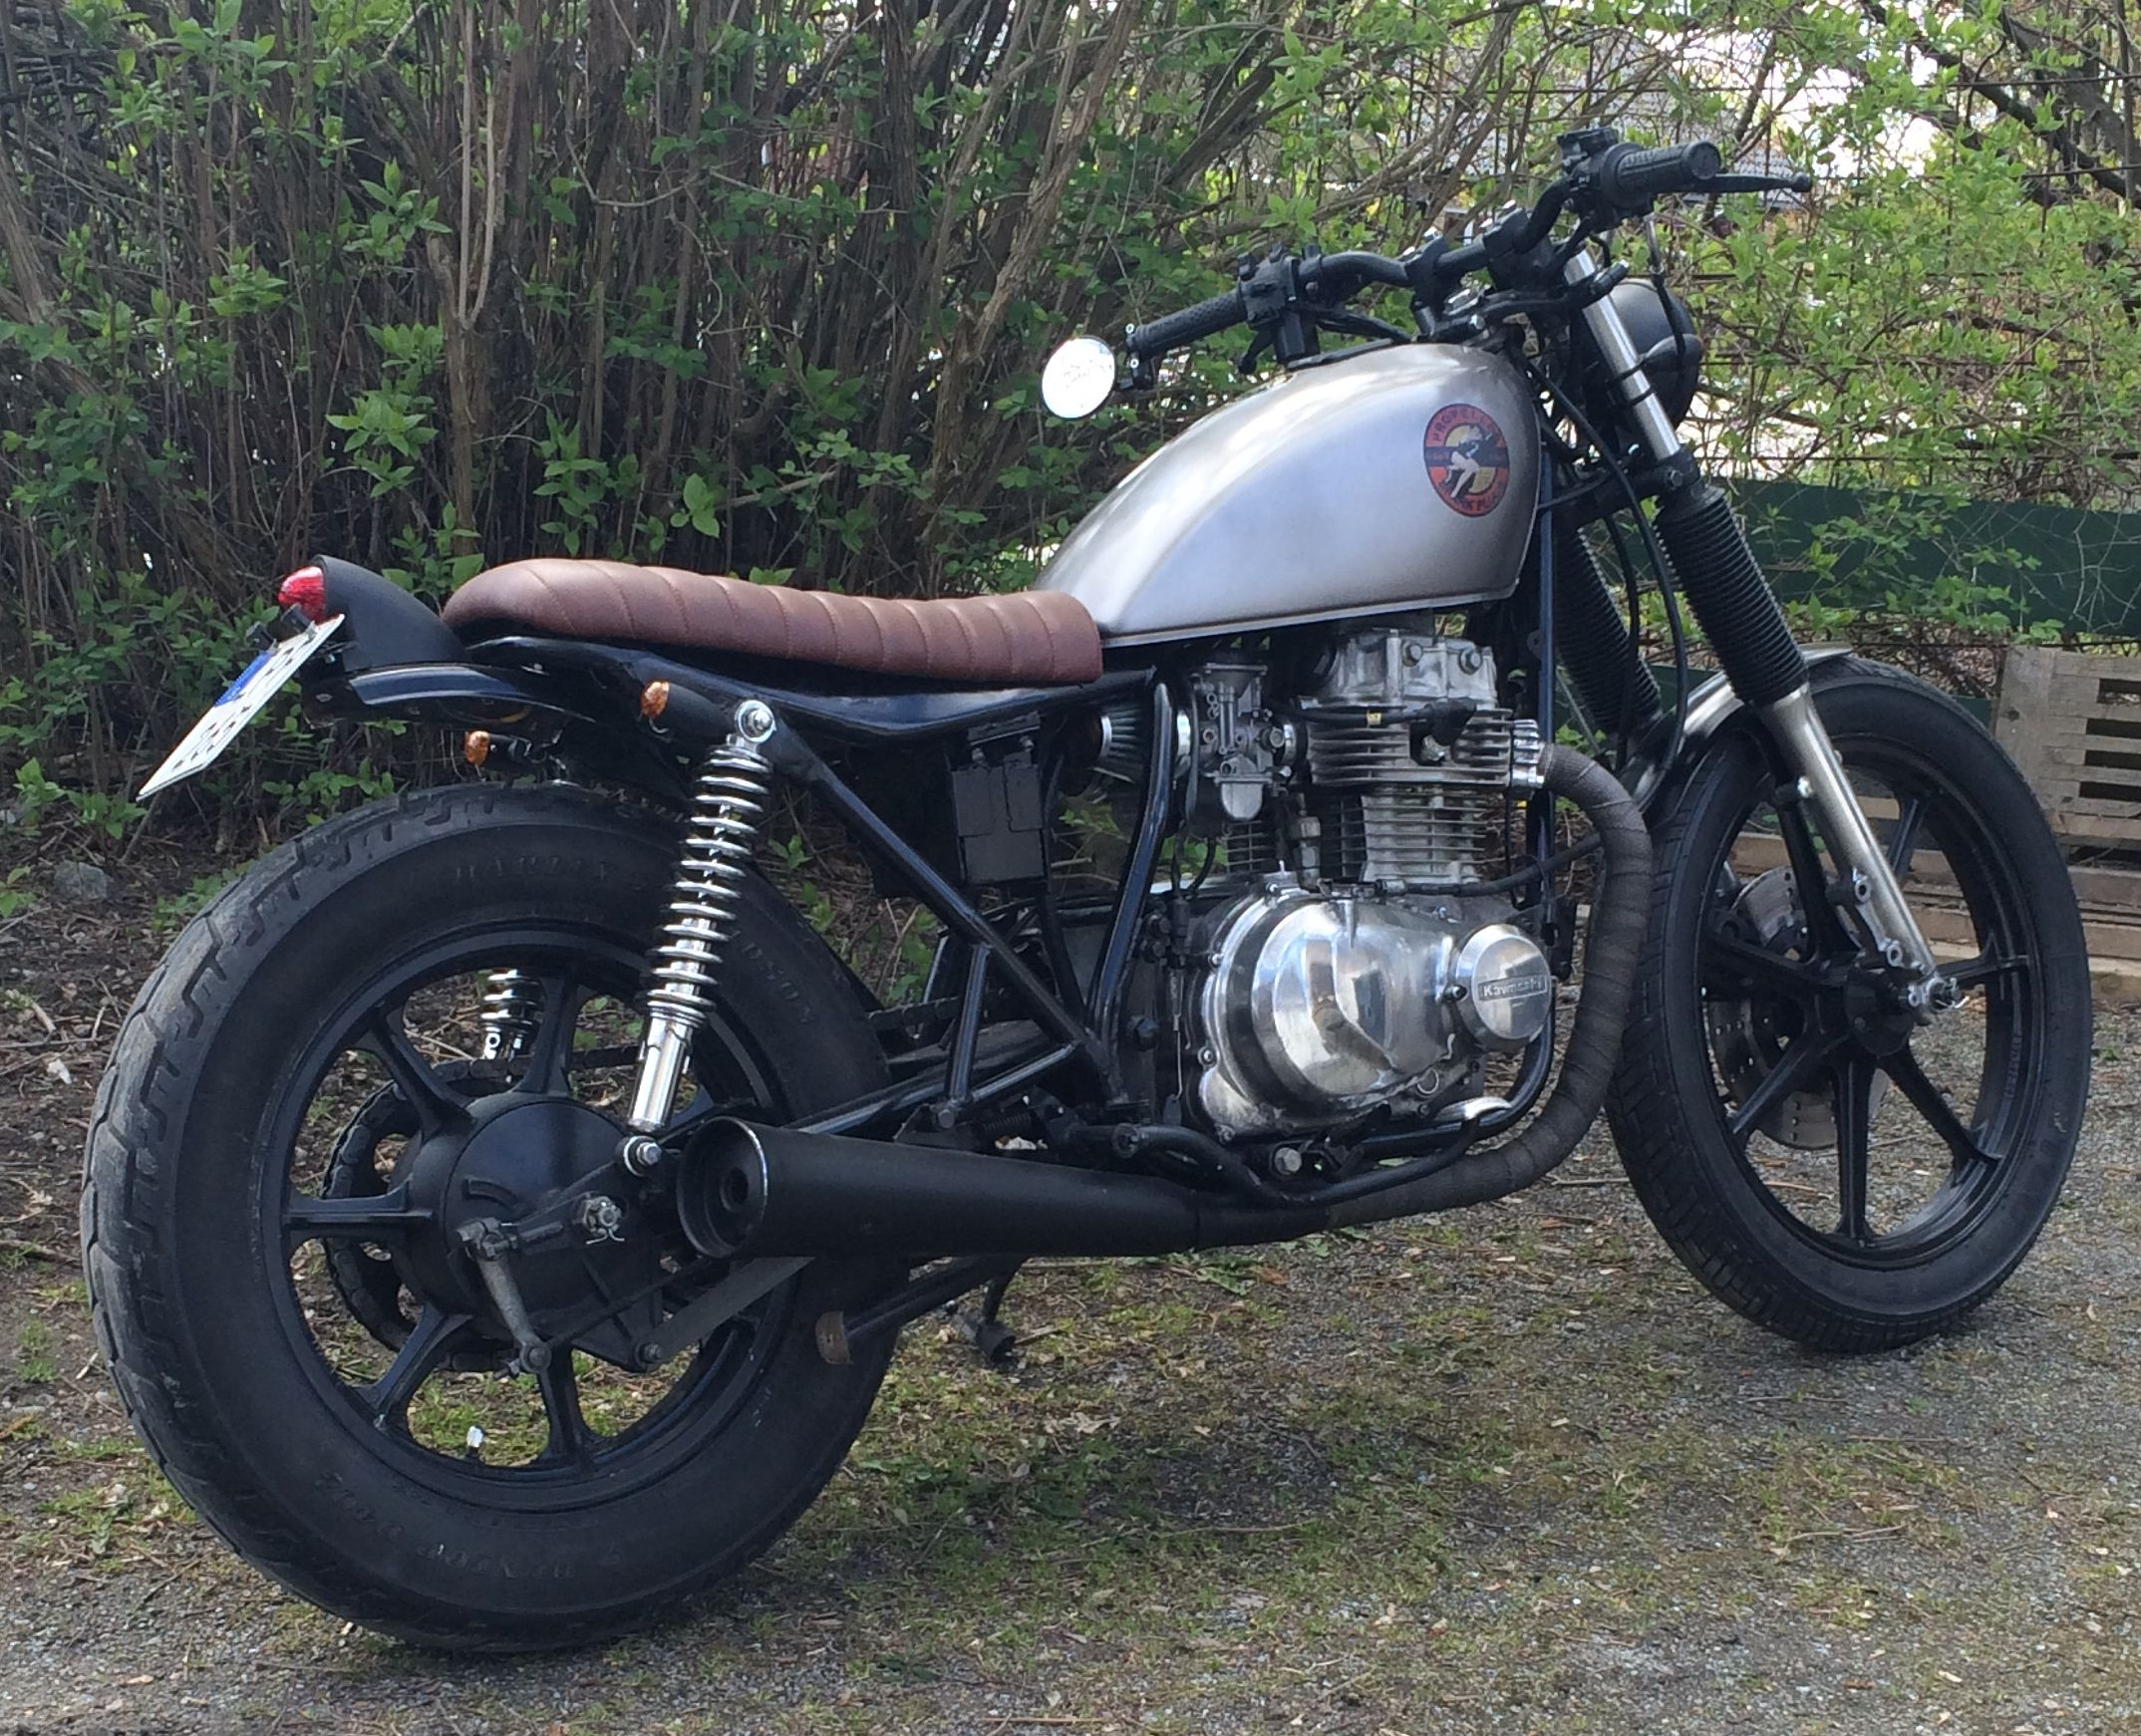 1981 Kawasaki 440 Ltd Cafe Racer | Reviewmotors co